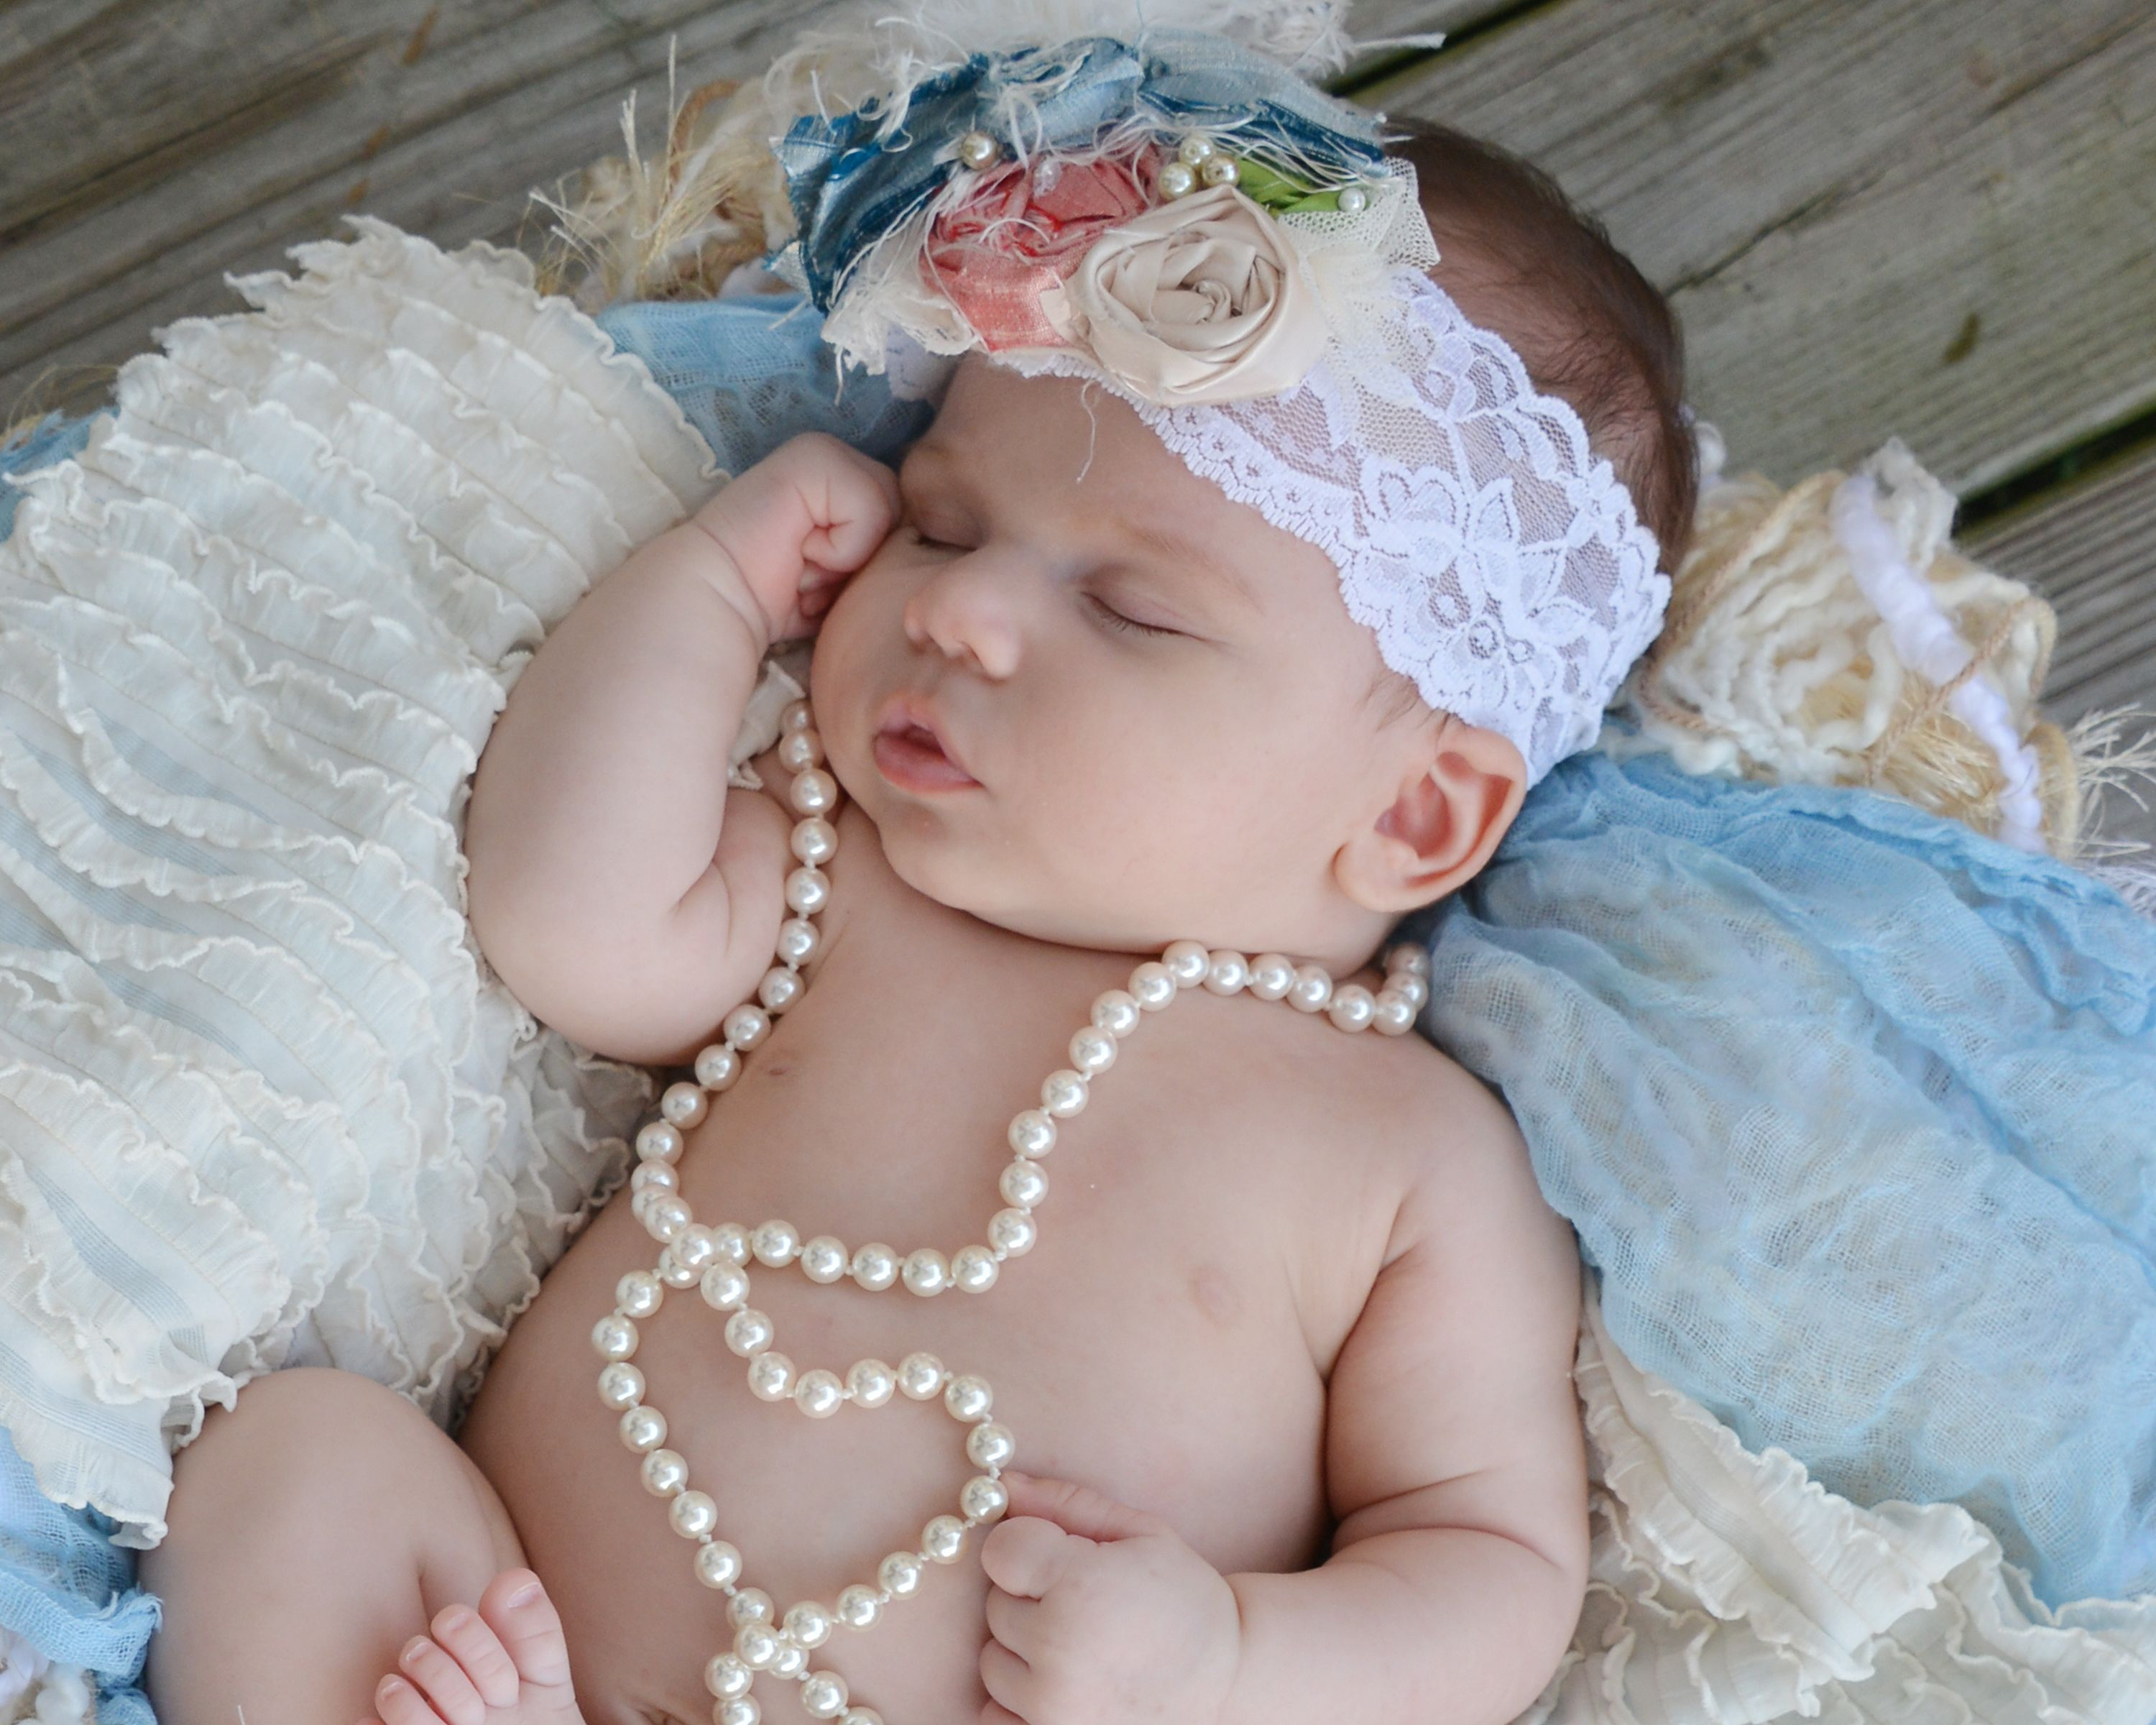 1 month old vintage headband photo shoot cute baby girl newborn photography newborn photoshoot baby photos